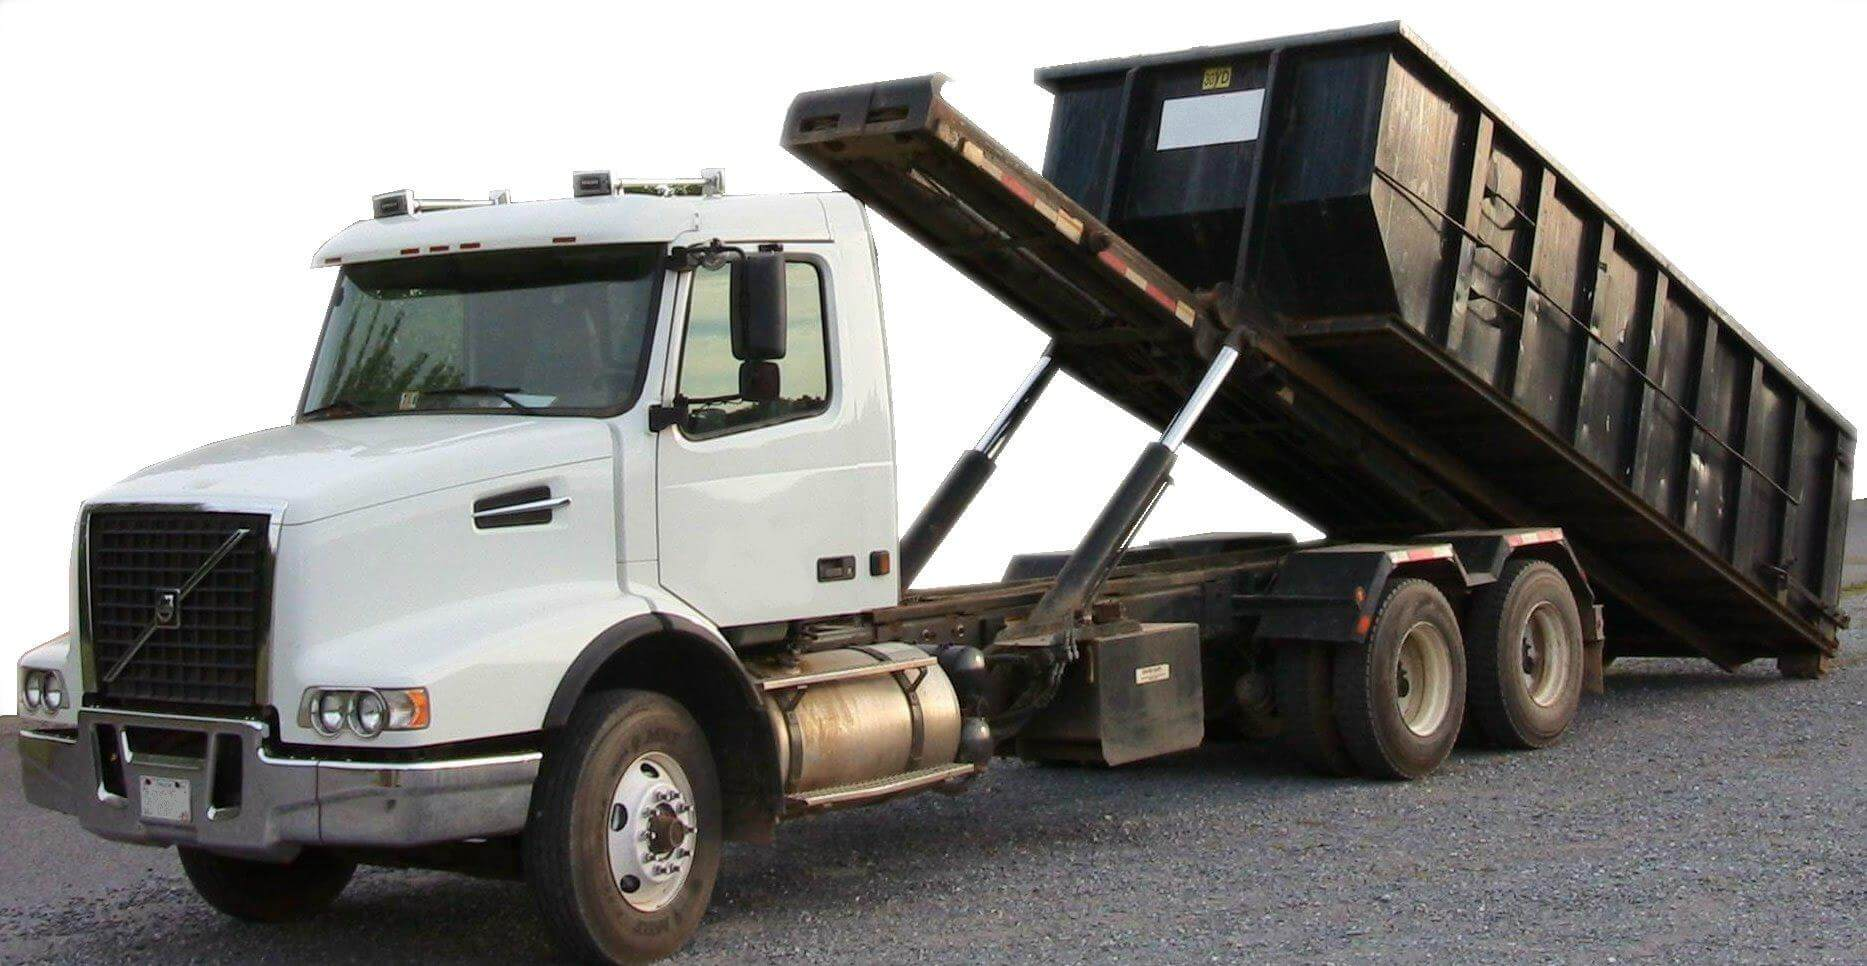 Baltimore's Best Dumpster Removal Services-Commercial dumpster rental-We Offer Residential and Commercial Dumpster Removal Services, Dumpster Rentals, Bulk Trash, Demolition Removal, Junk Hauling, Rubbish Removal, Waste Containers, Debris Removal, 10 Yard Containers, 15 Yard to 20 Yard to 30 Yard to 40 Yard Container Rentals, and much more!